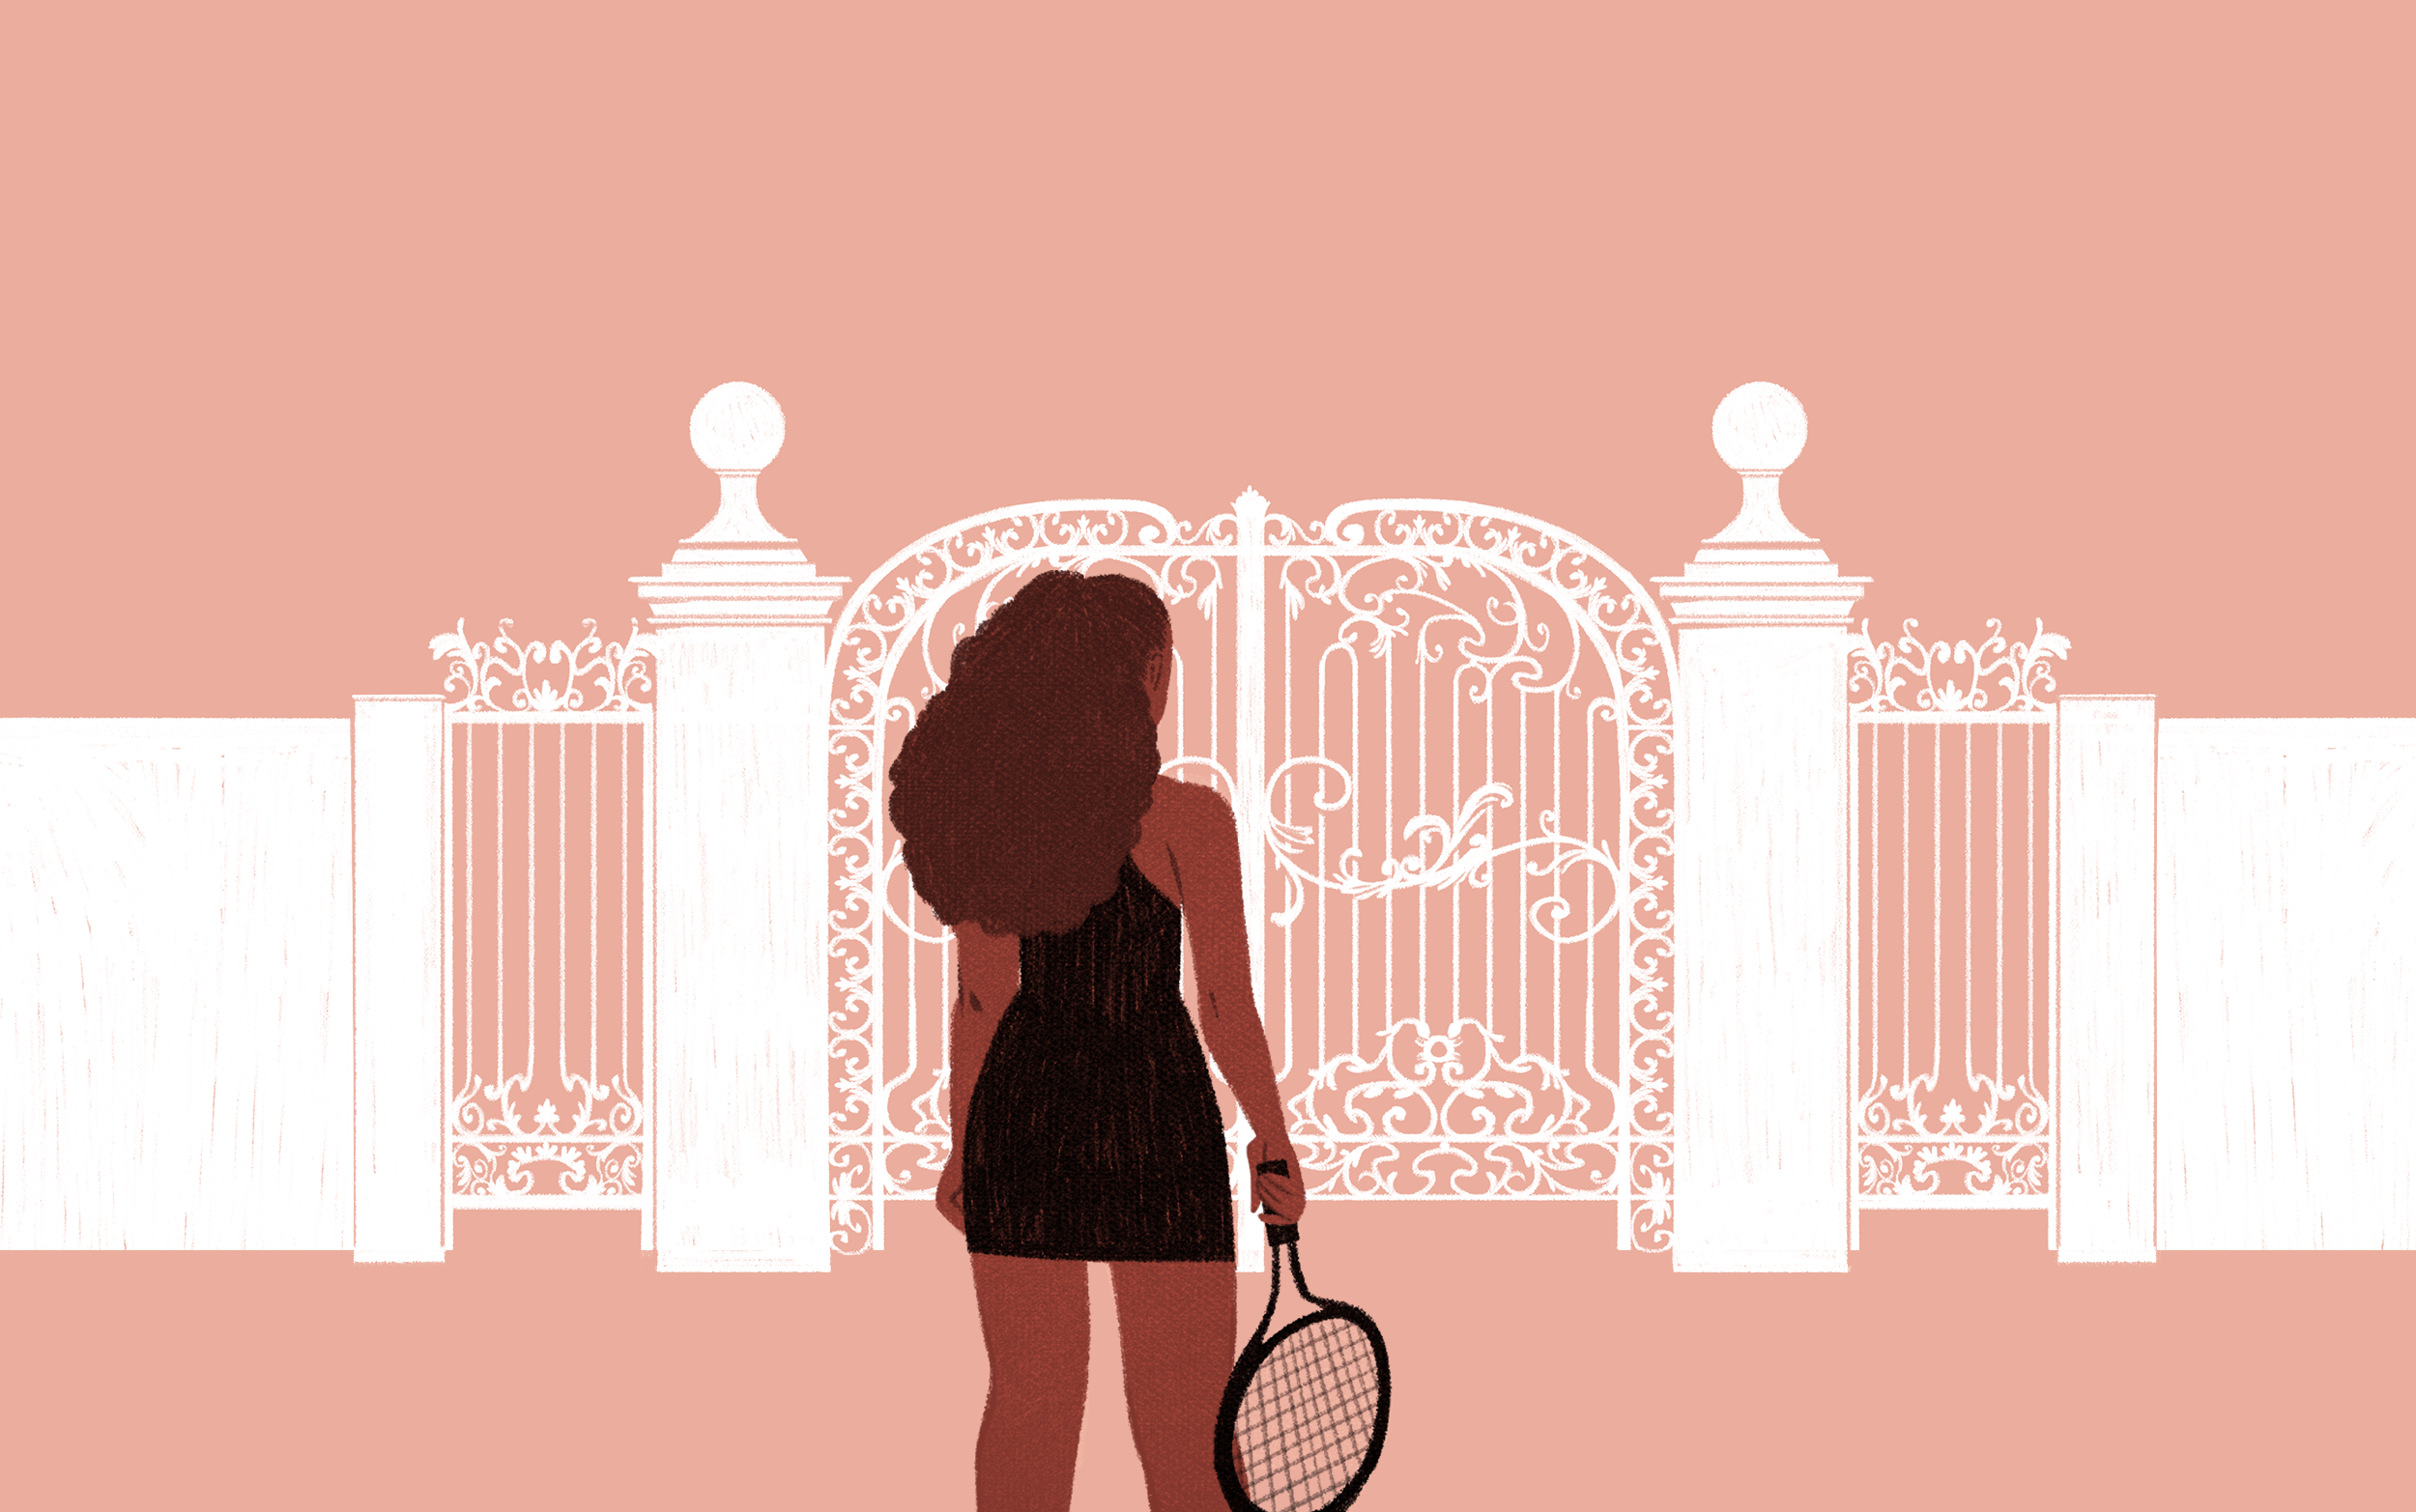 Cartoon Of Serena Williams Proves The Racist Sexist History Of